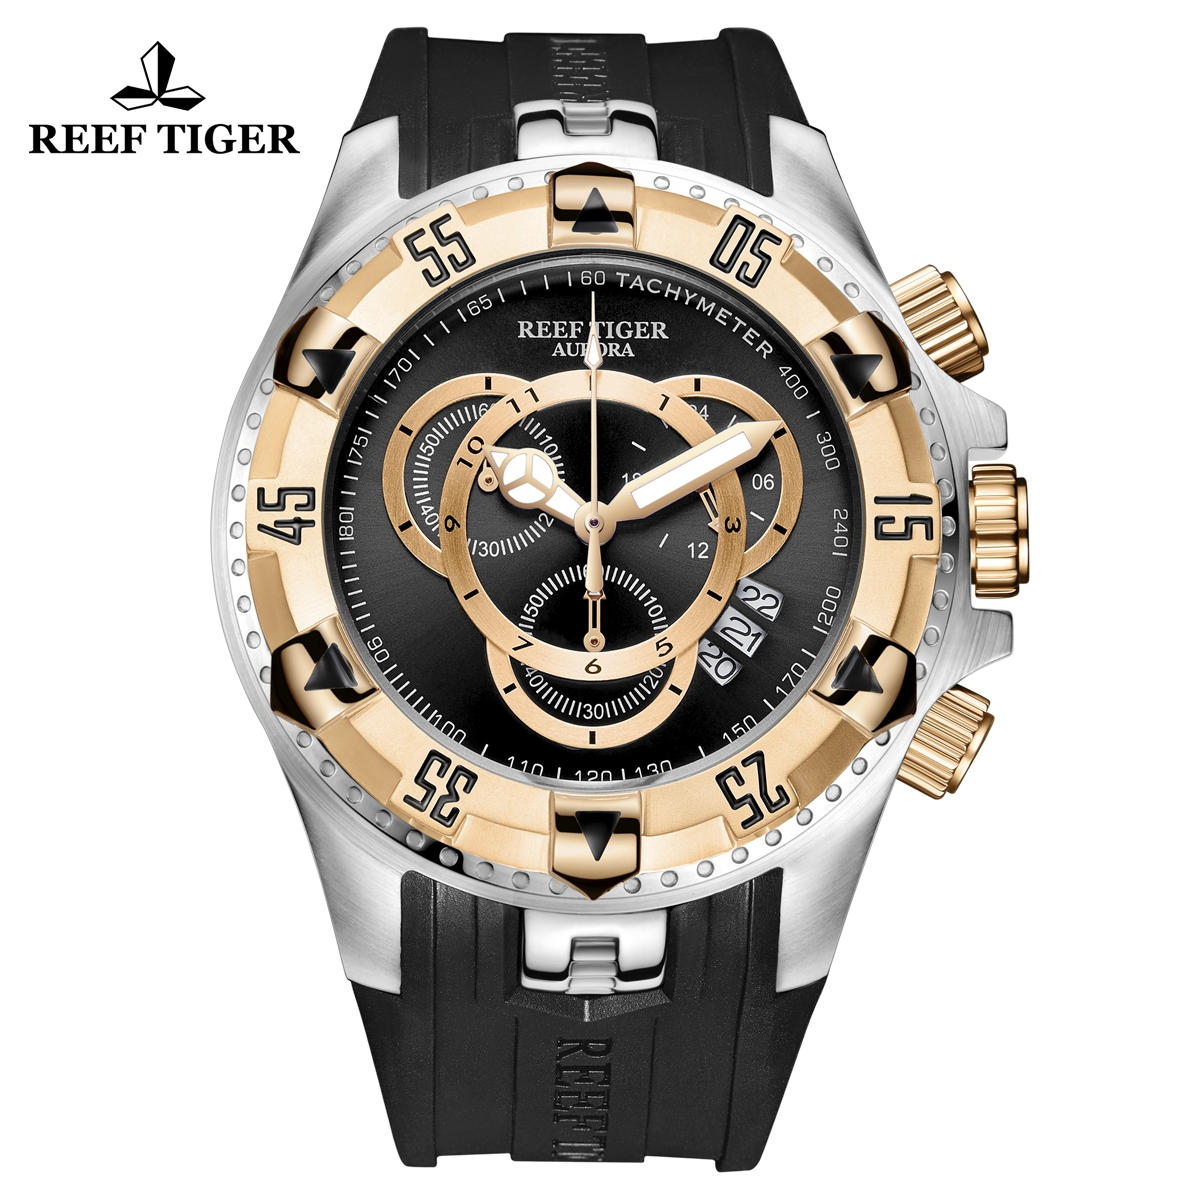 Reef Tiger Aurora Hercules II Fashion Steel/Rose Gold Rubber Strap Black Dial Quartz Watch RGA303-2-YBBG